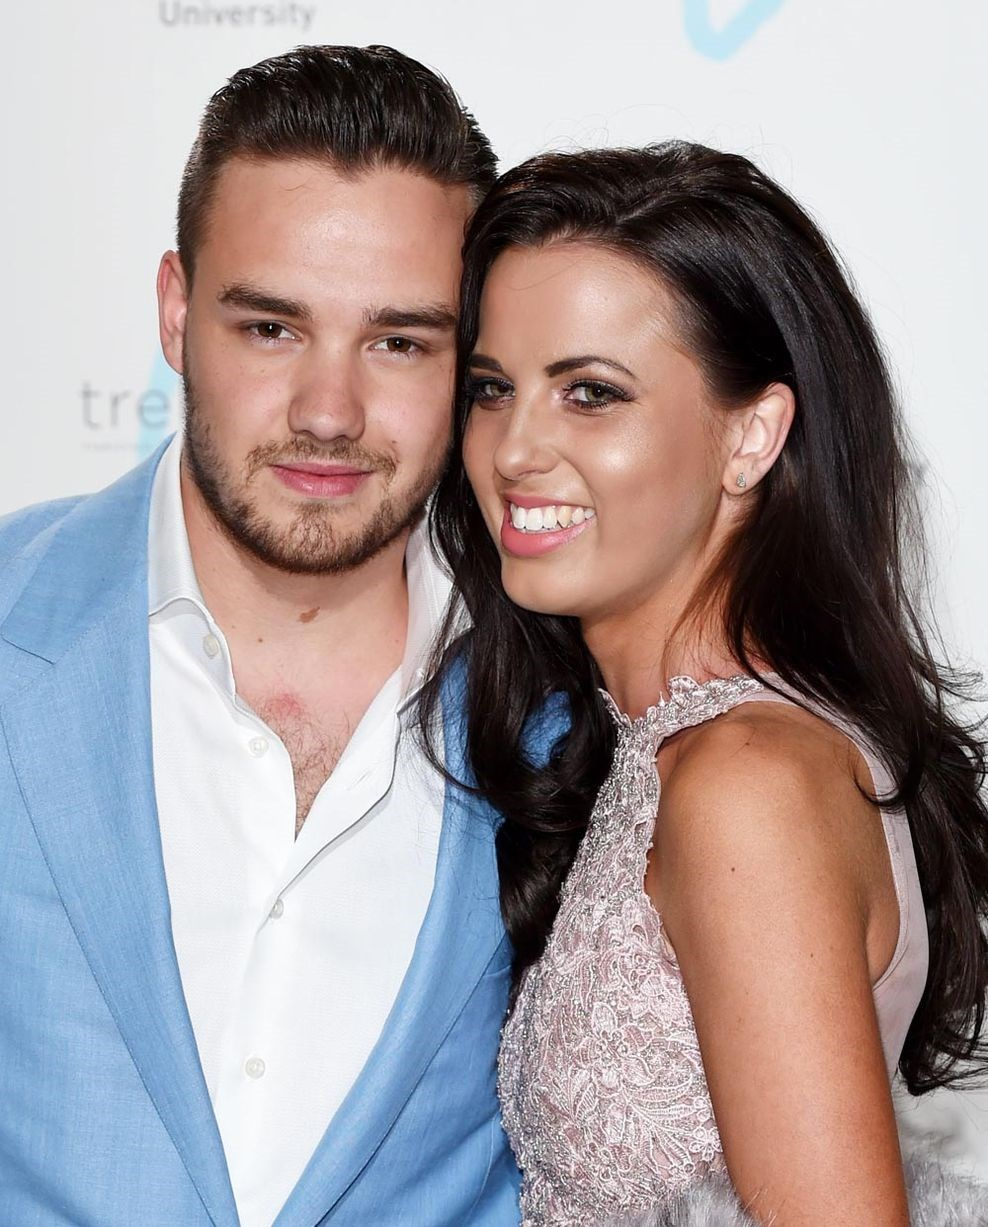 **Liam Payne and Sophia Smith:** Following their breakup after a smooth two-year relationship, things got a bit messy. Liam deleted ALL of his photos of Sophia from Instagram, and Sophia - who was originally VERY private - made her social media profiles public.